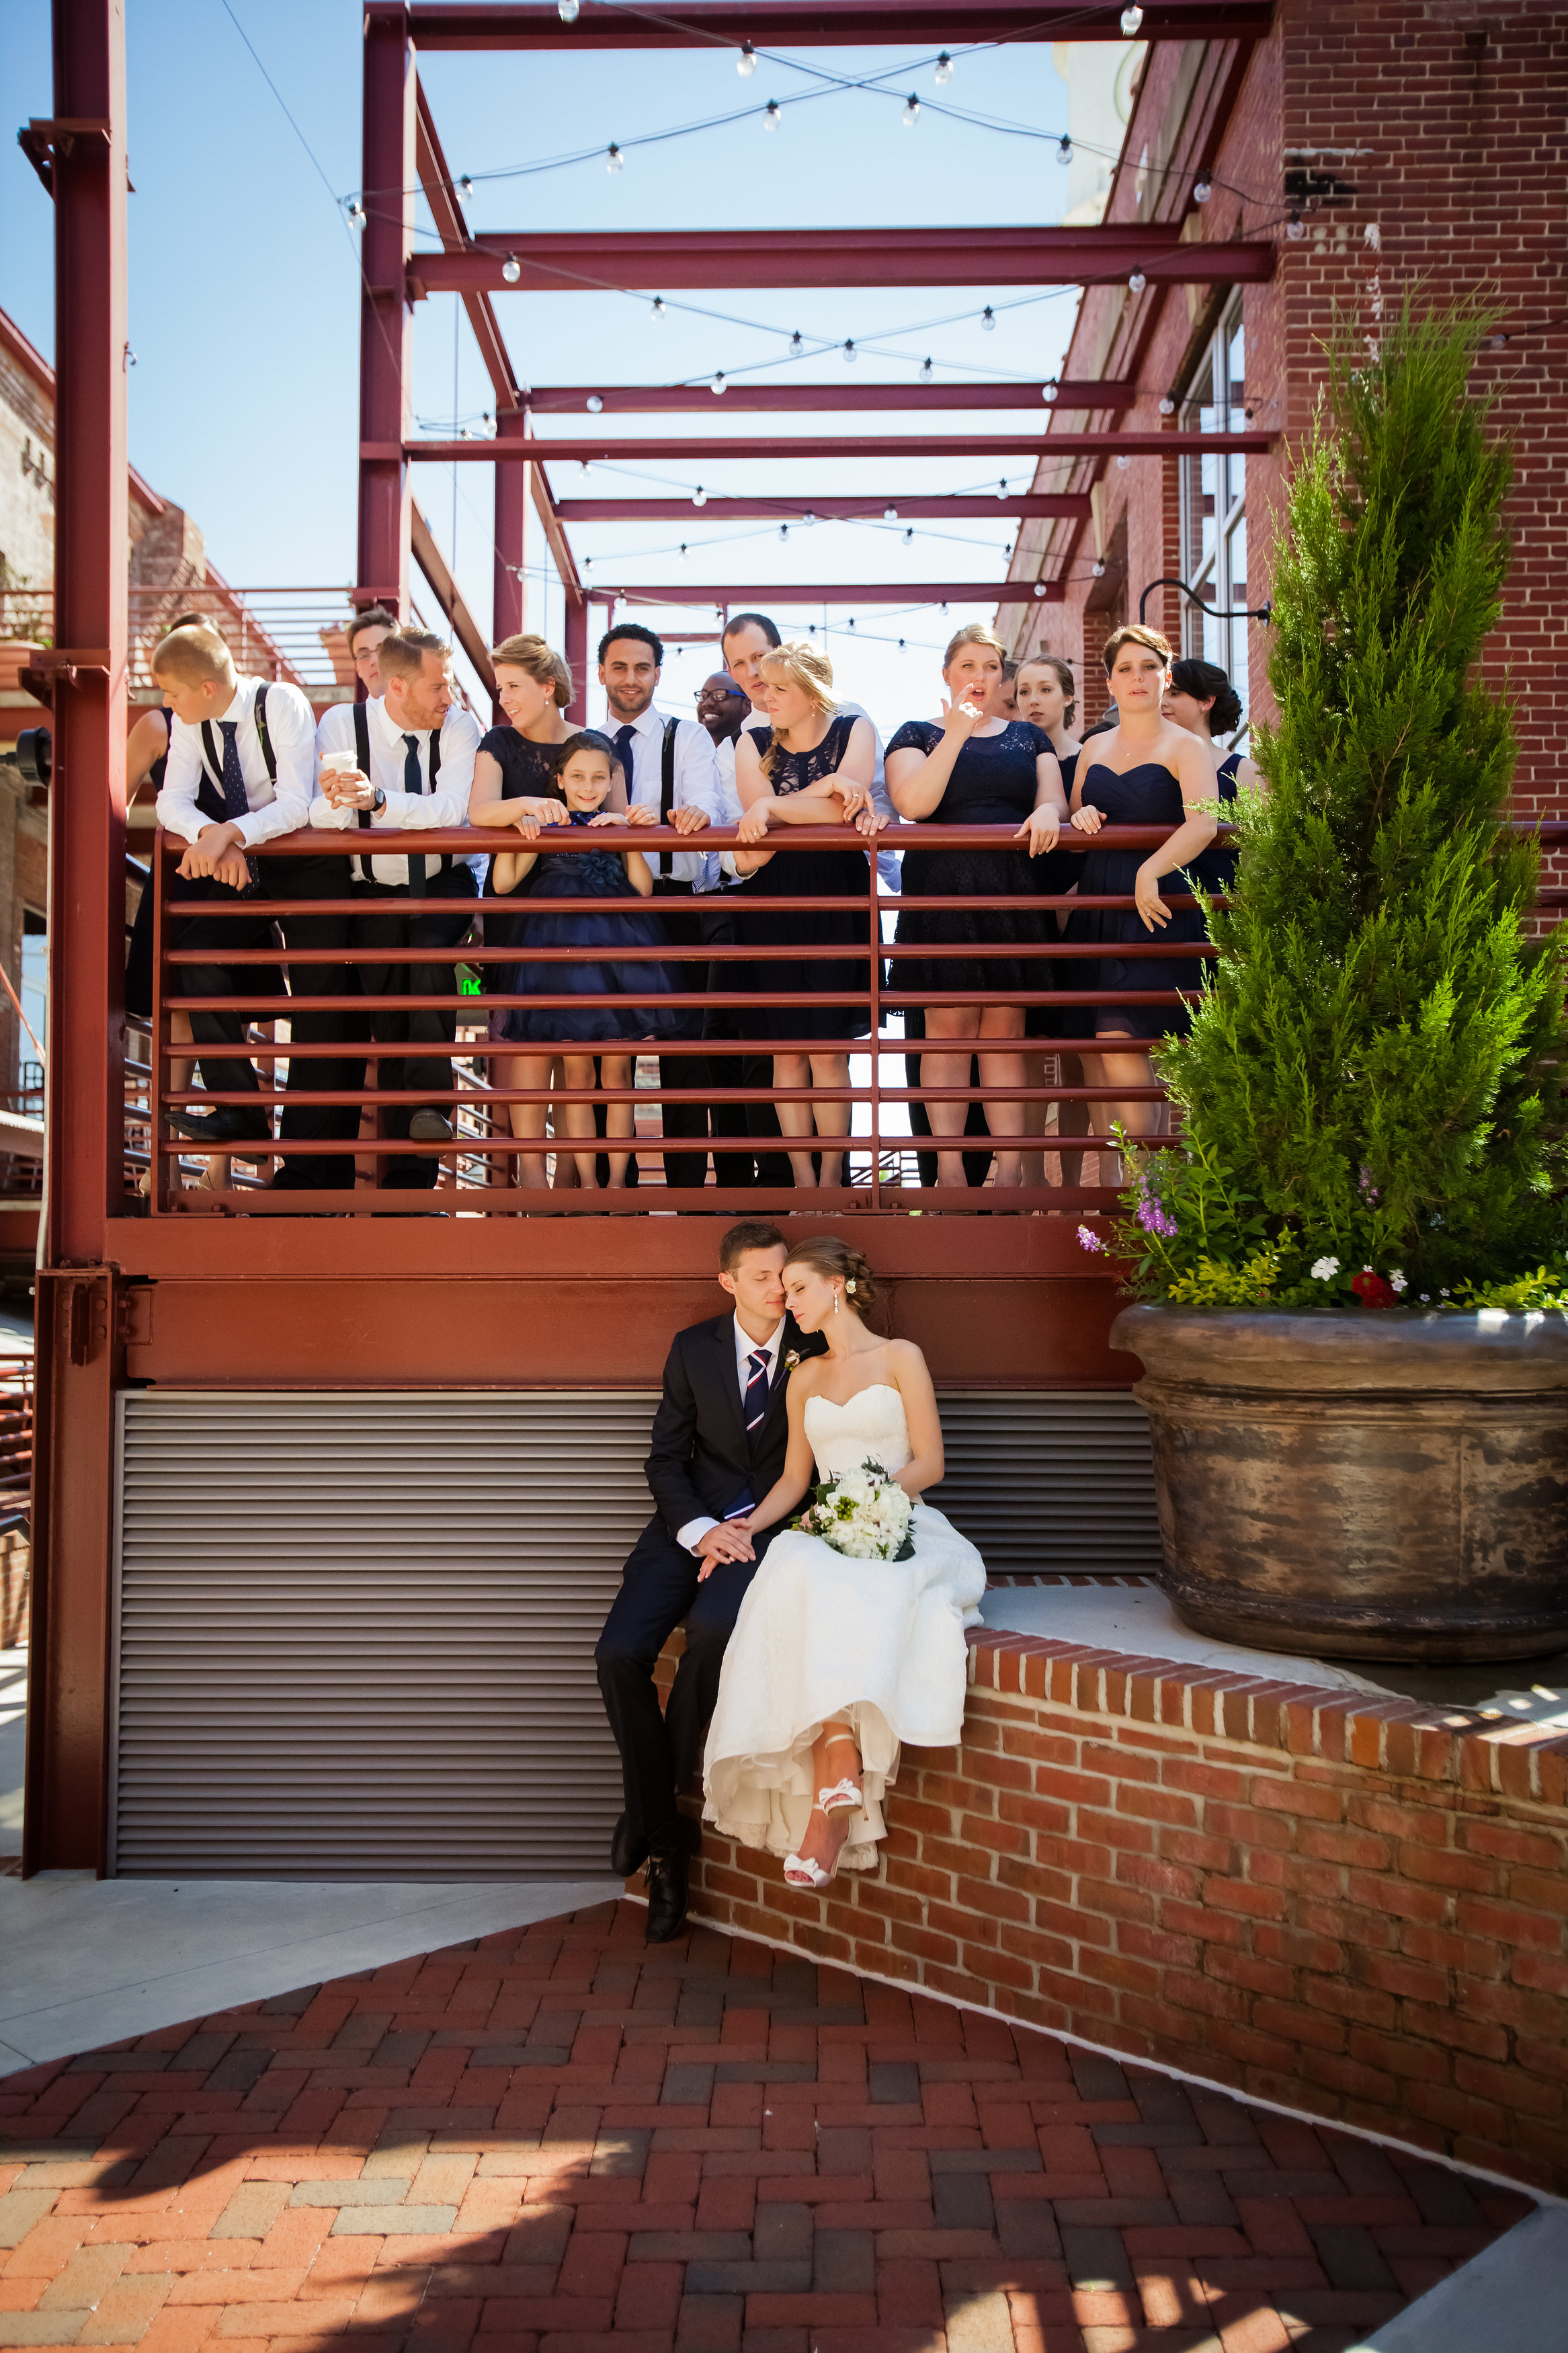 Edwards-BrownWedding-544.jpg